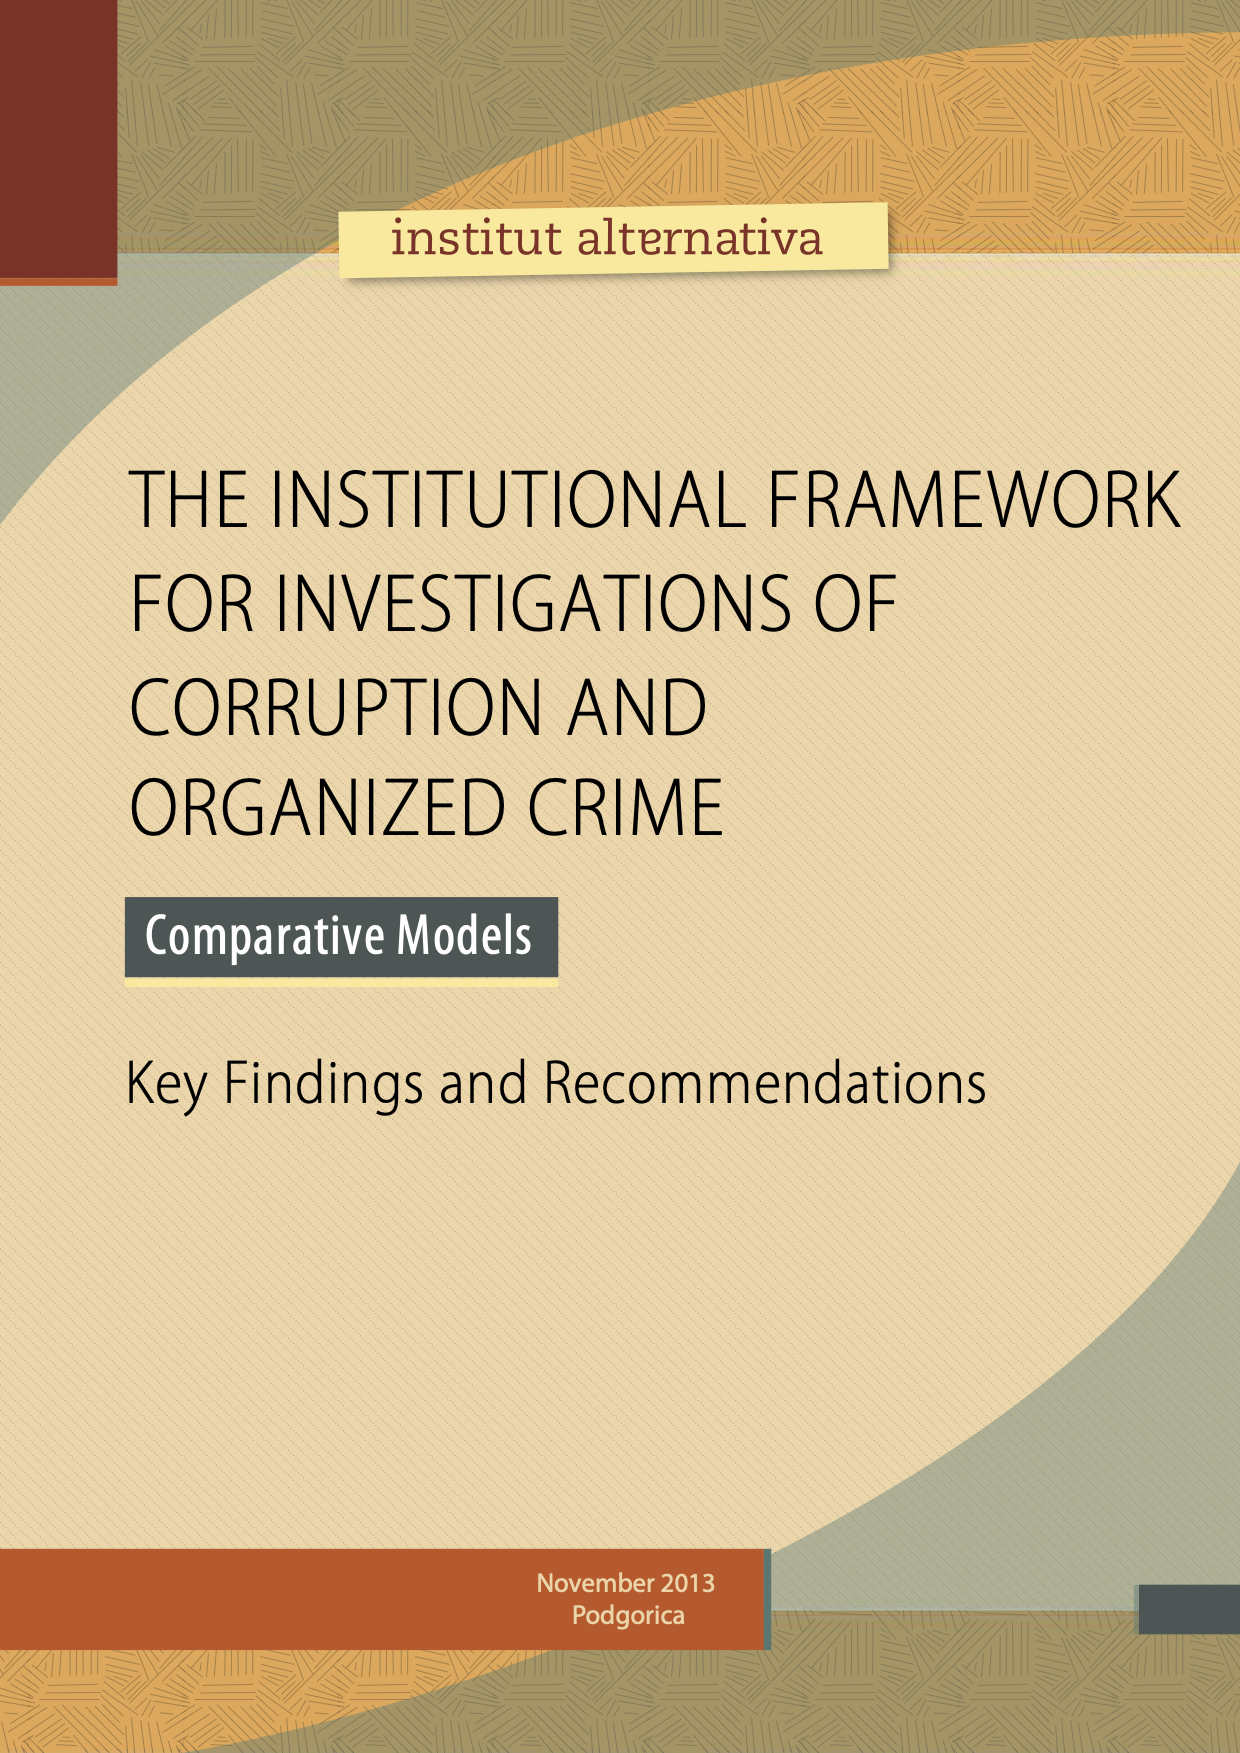 The institutional framework for investigations of corruption and organized crime - Comparative models